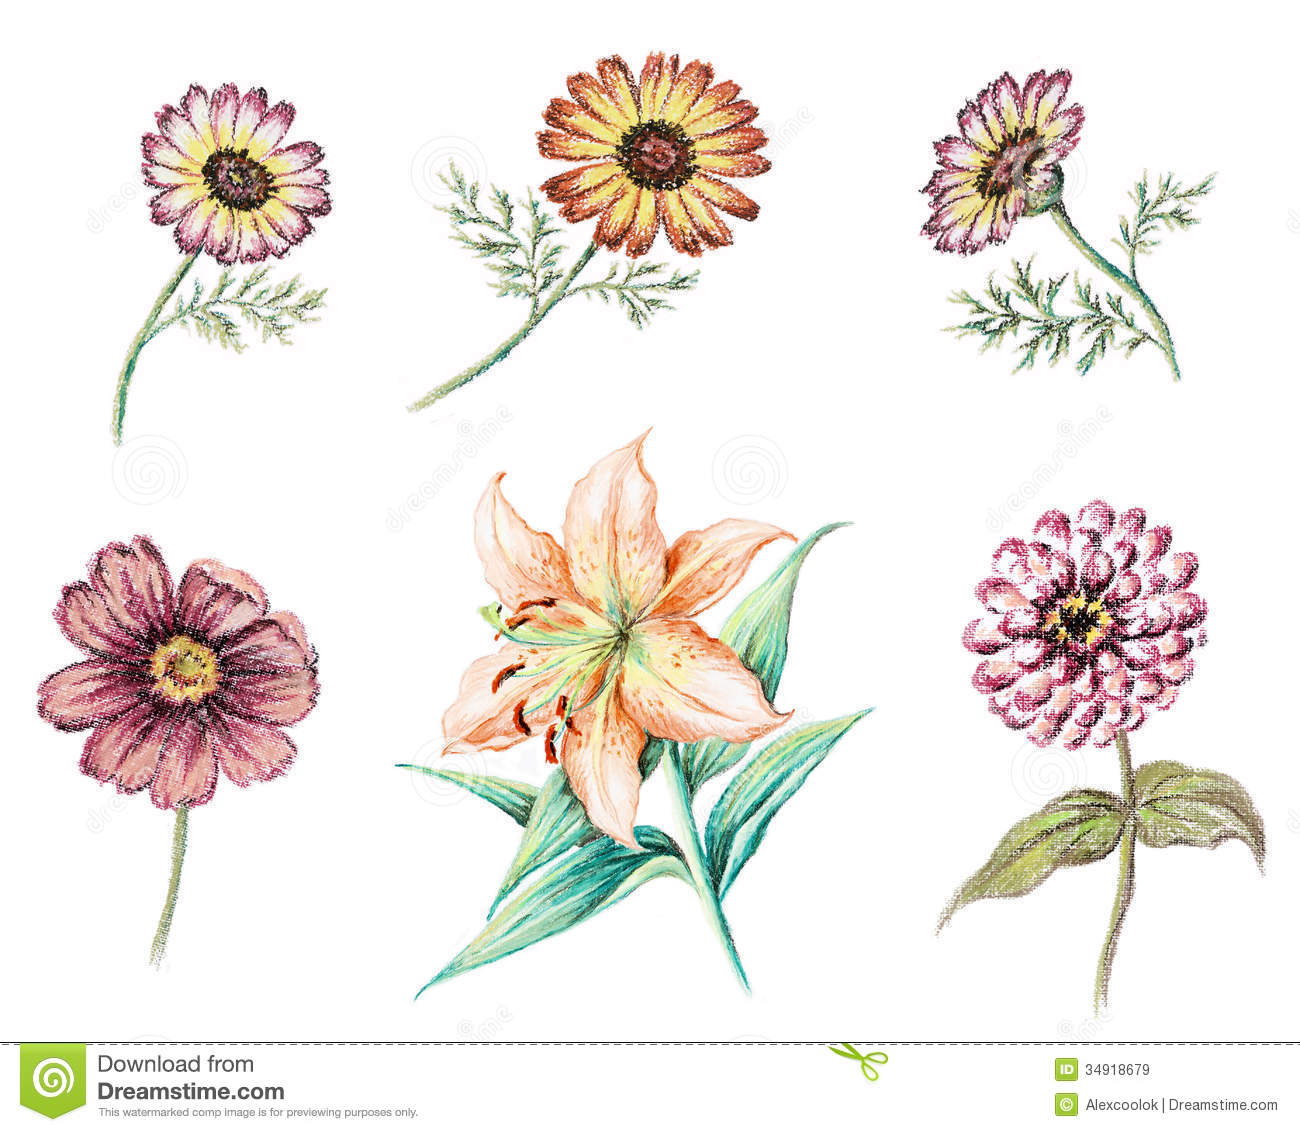 aster flower drawing, Beautiful flower